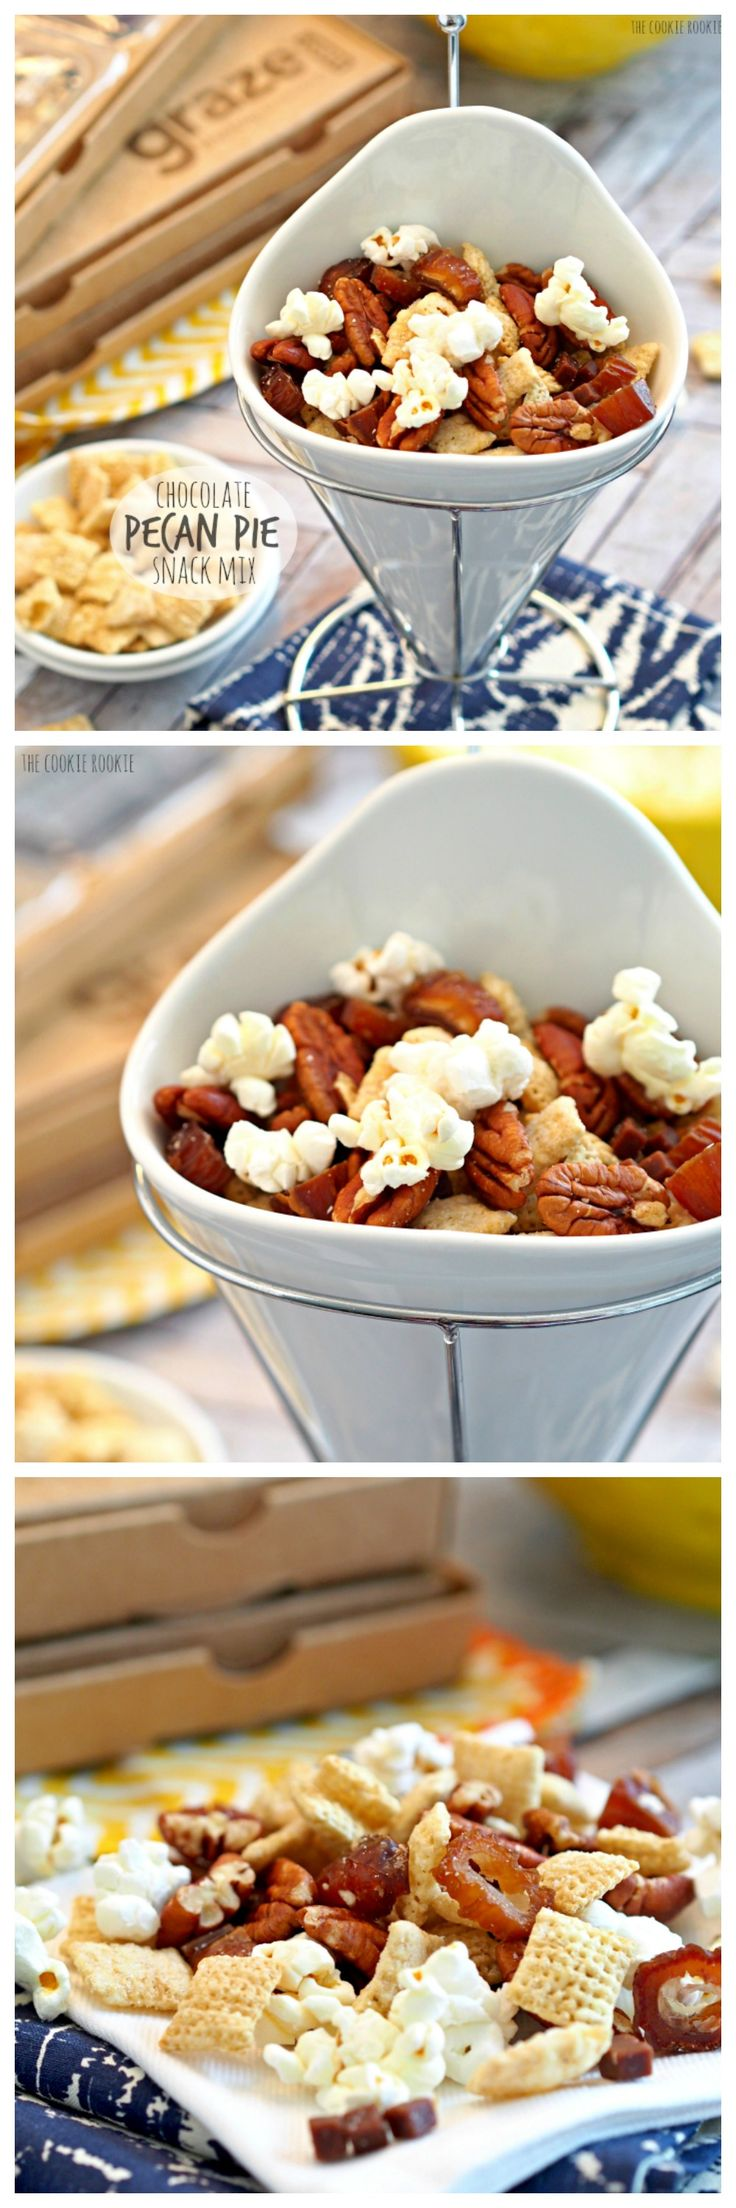 Chocolate Pecan Pie Snack Mix. This stuff is the best!! Perfect healthy snacking!